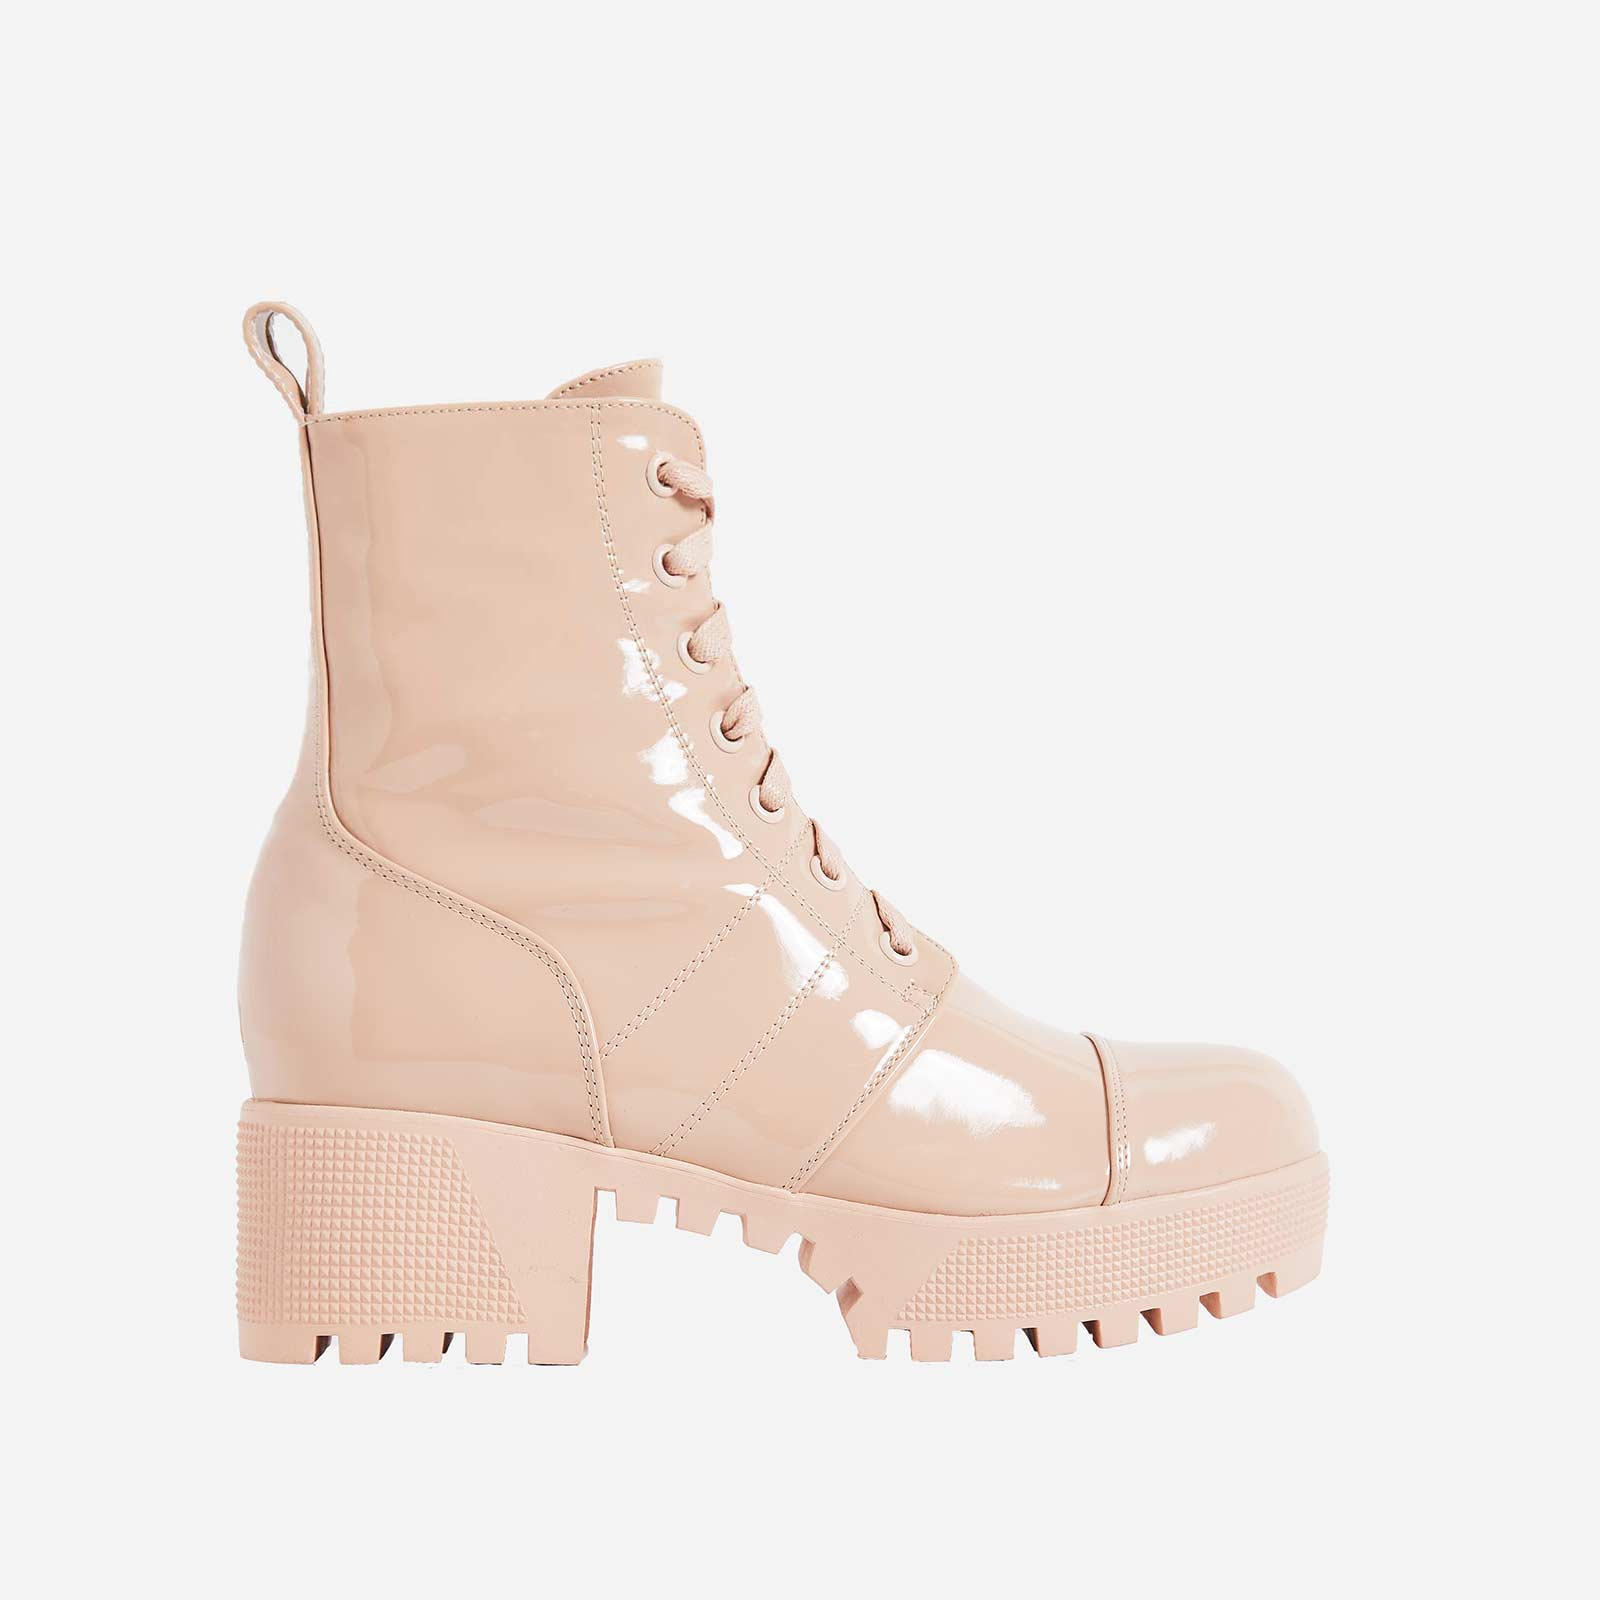 Cooper Chunky Sole Lace Up Boot In Ankle Biker Boot In Nude Patent